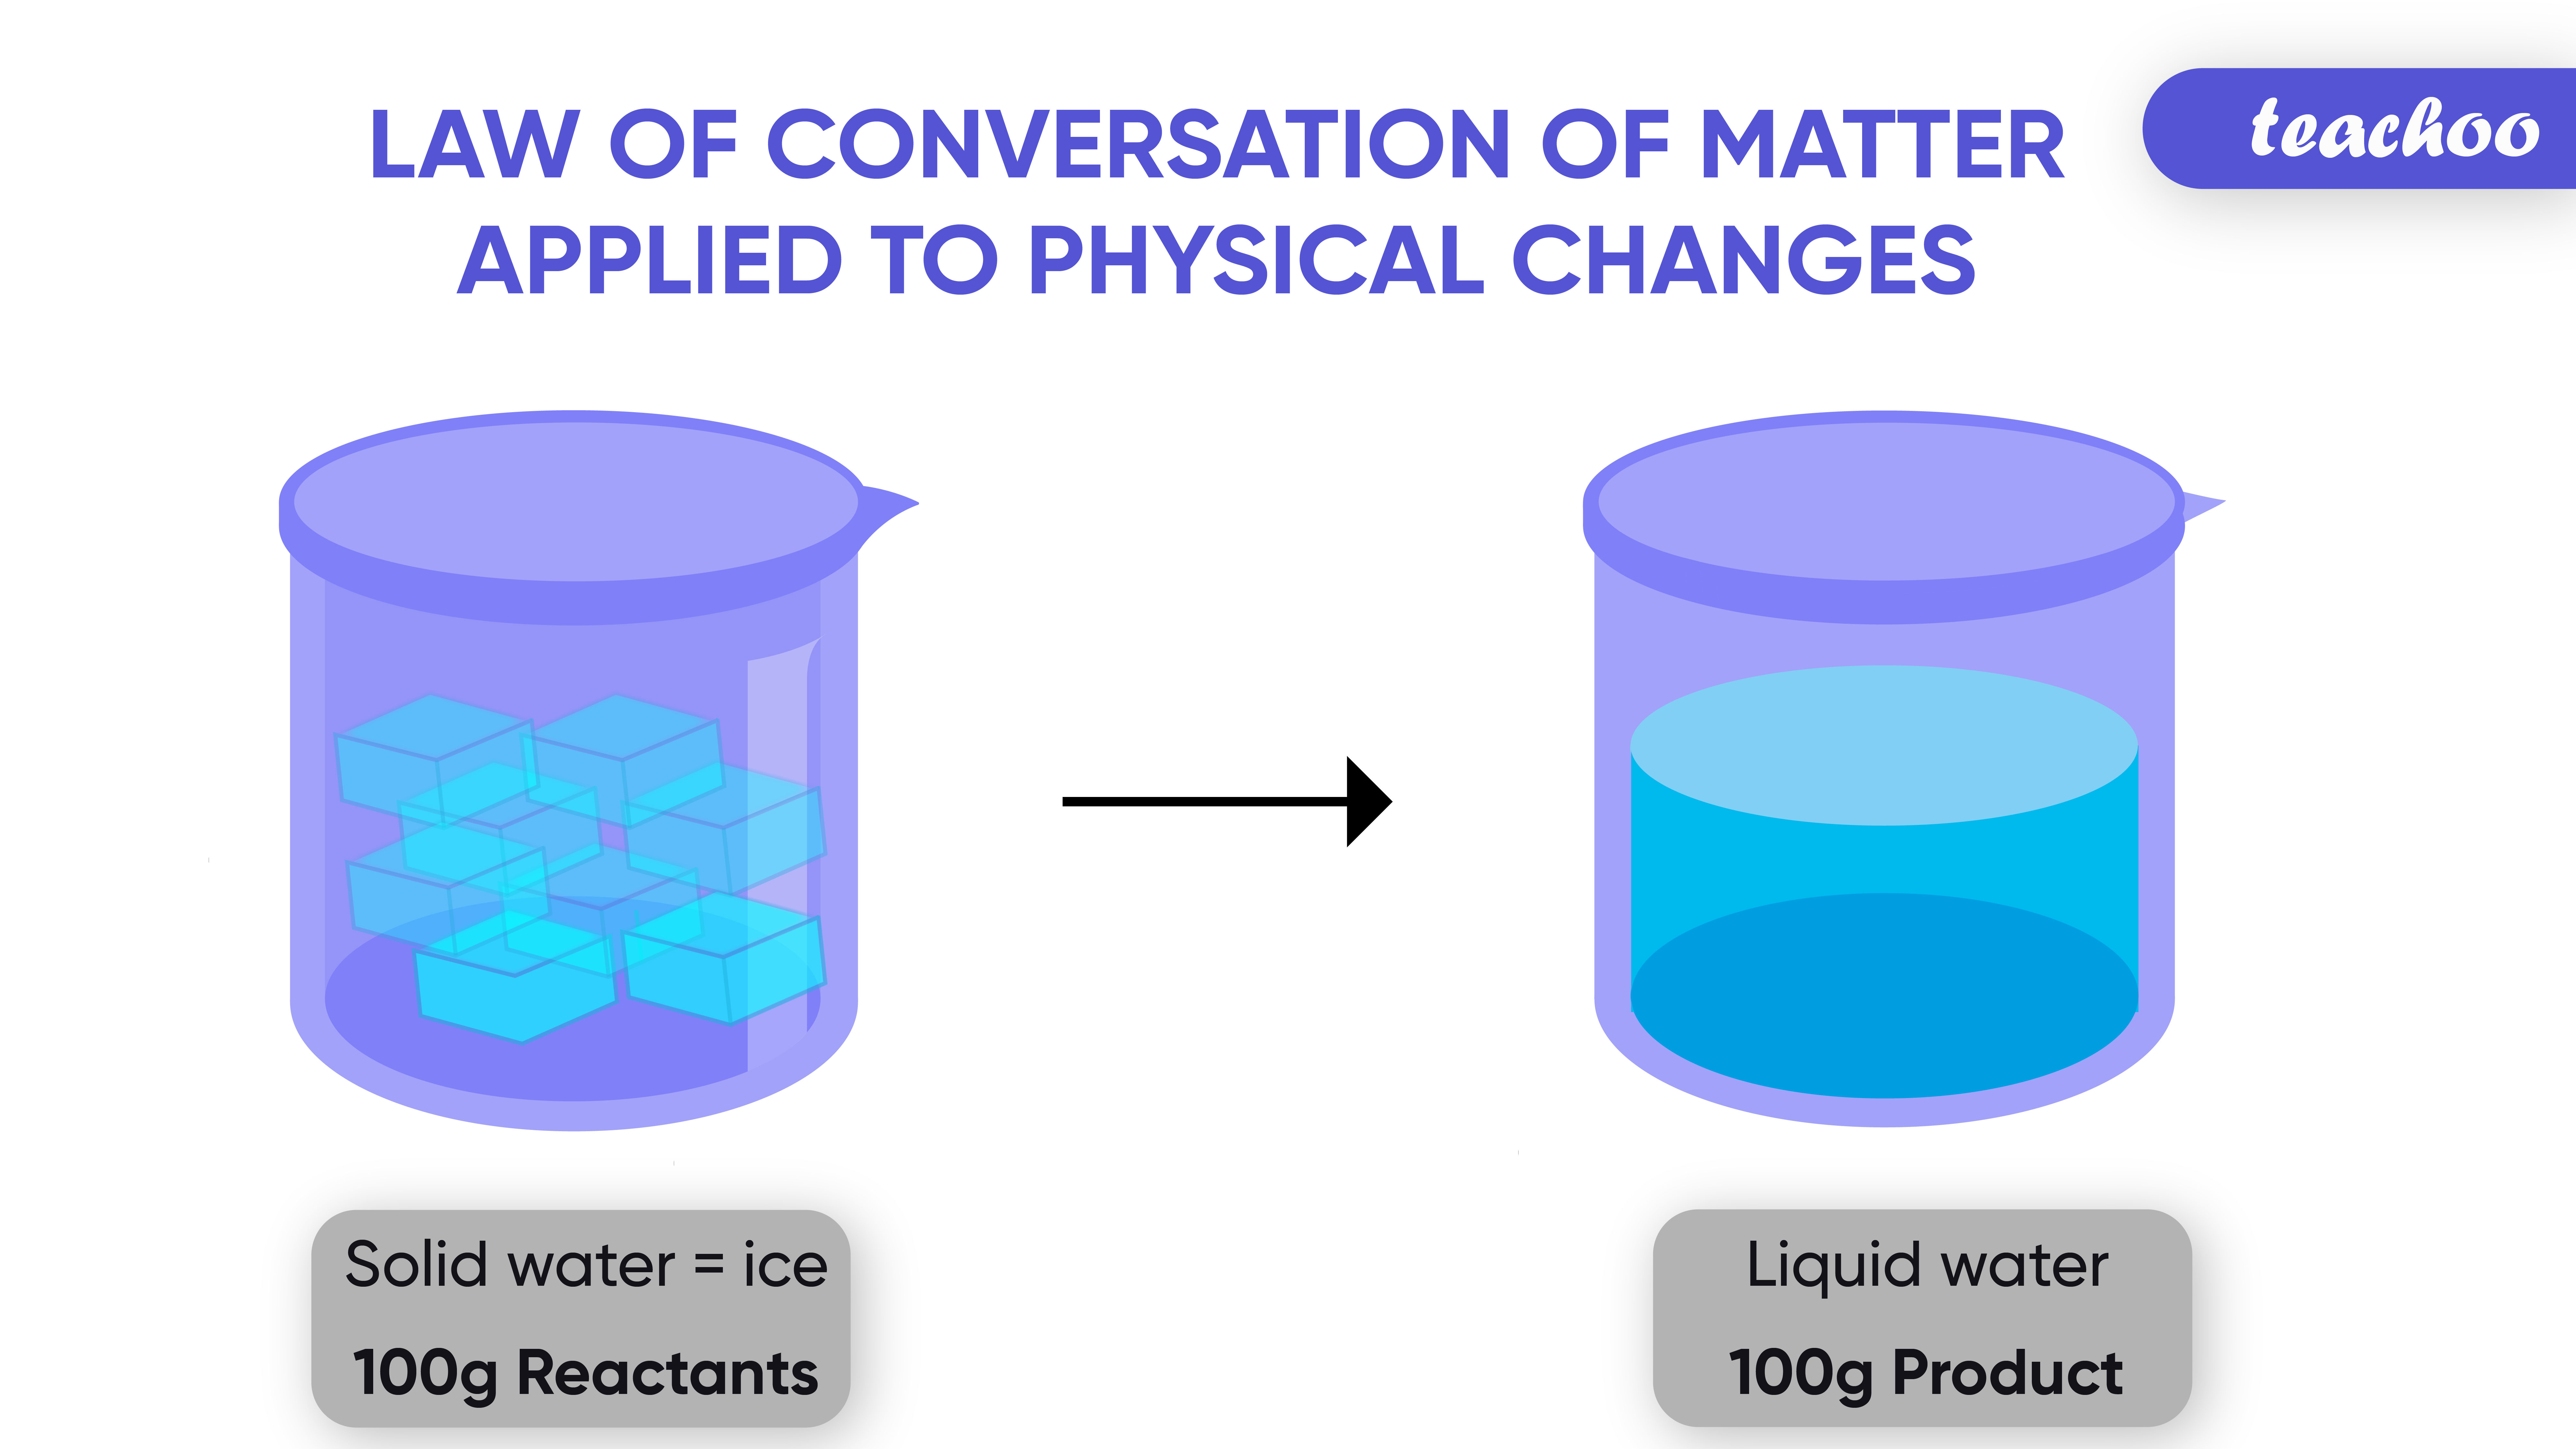 Law of conversation of matter applied to Physical changes-Teachoo-01.jpg